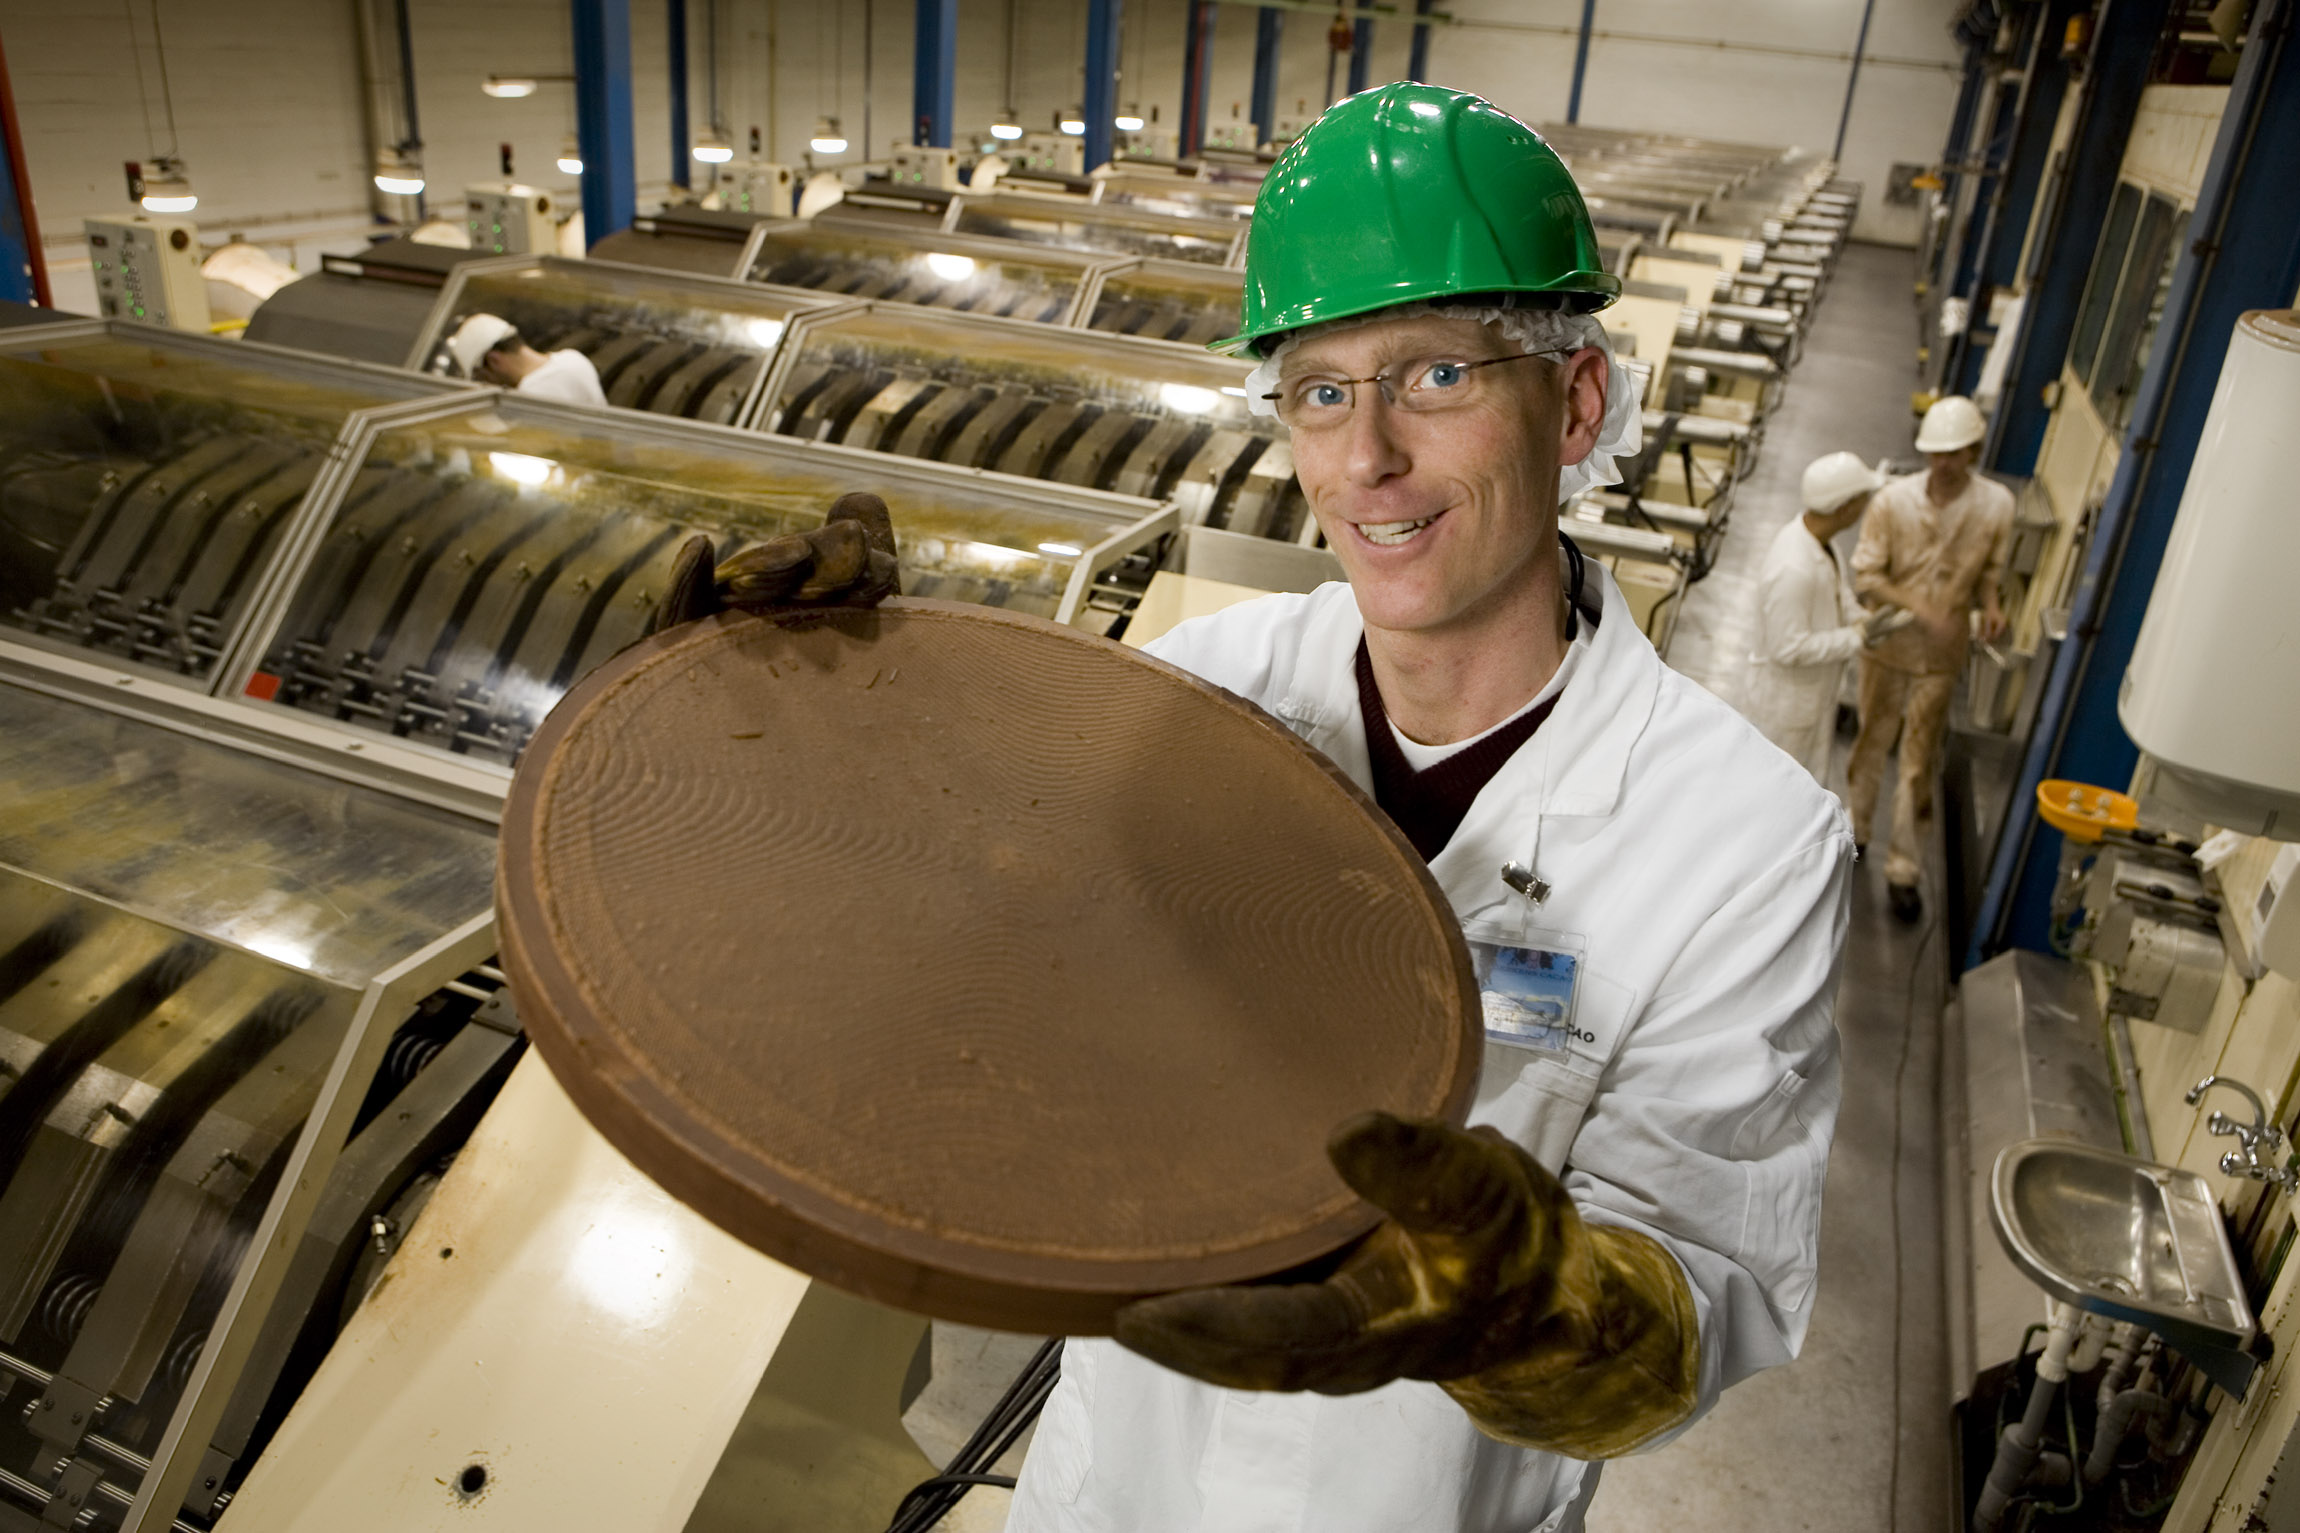 Cocoa proceesing plant, Amsterdam, The Netherlands